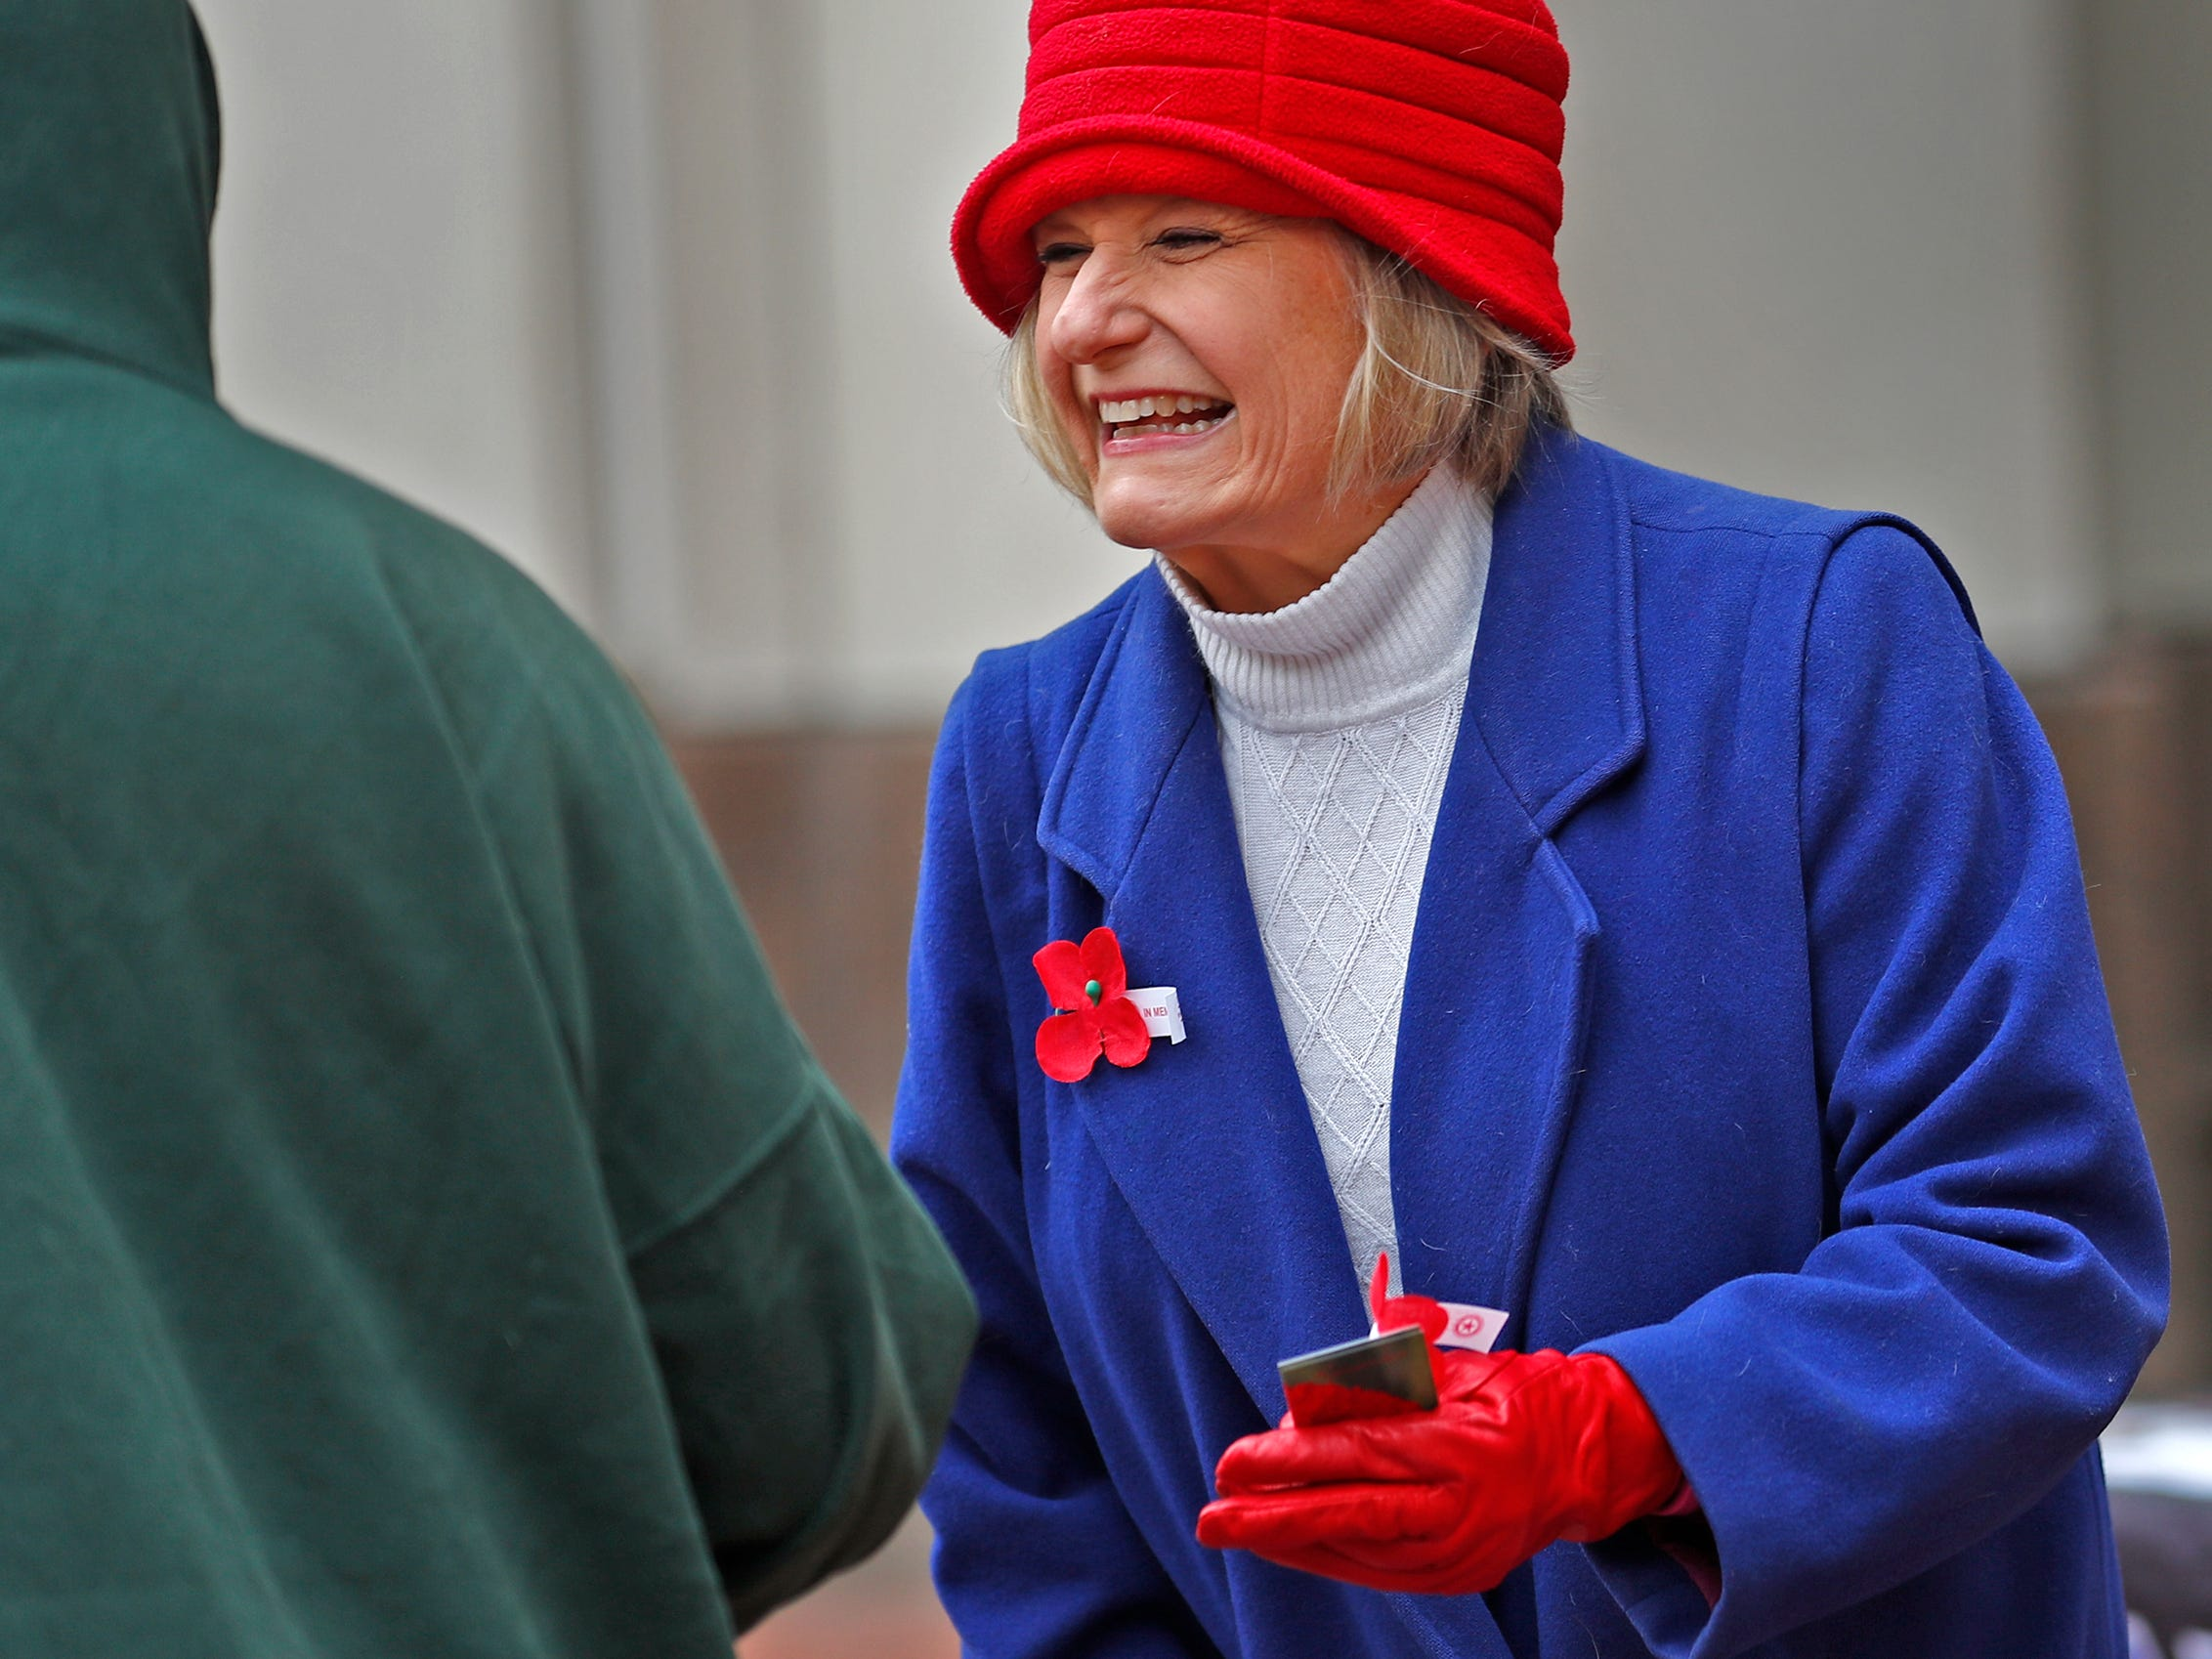 Marie Beason, Executive Director of the Indiana War Memorials Foundation, smiles as she gives away free Remembrance Poppies from the Indiana War Memorials Foundation (IWMF) and Emmis Communications, on Monument Circle, Friday, Nov. 9, 2018.  The flower give-away is in celebration of Veterans Day and the 100th anniversary of the end of World War I.